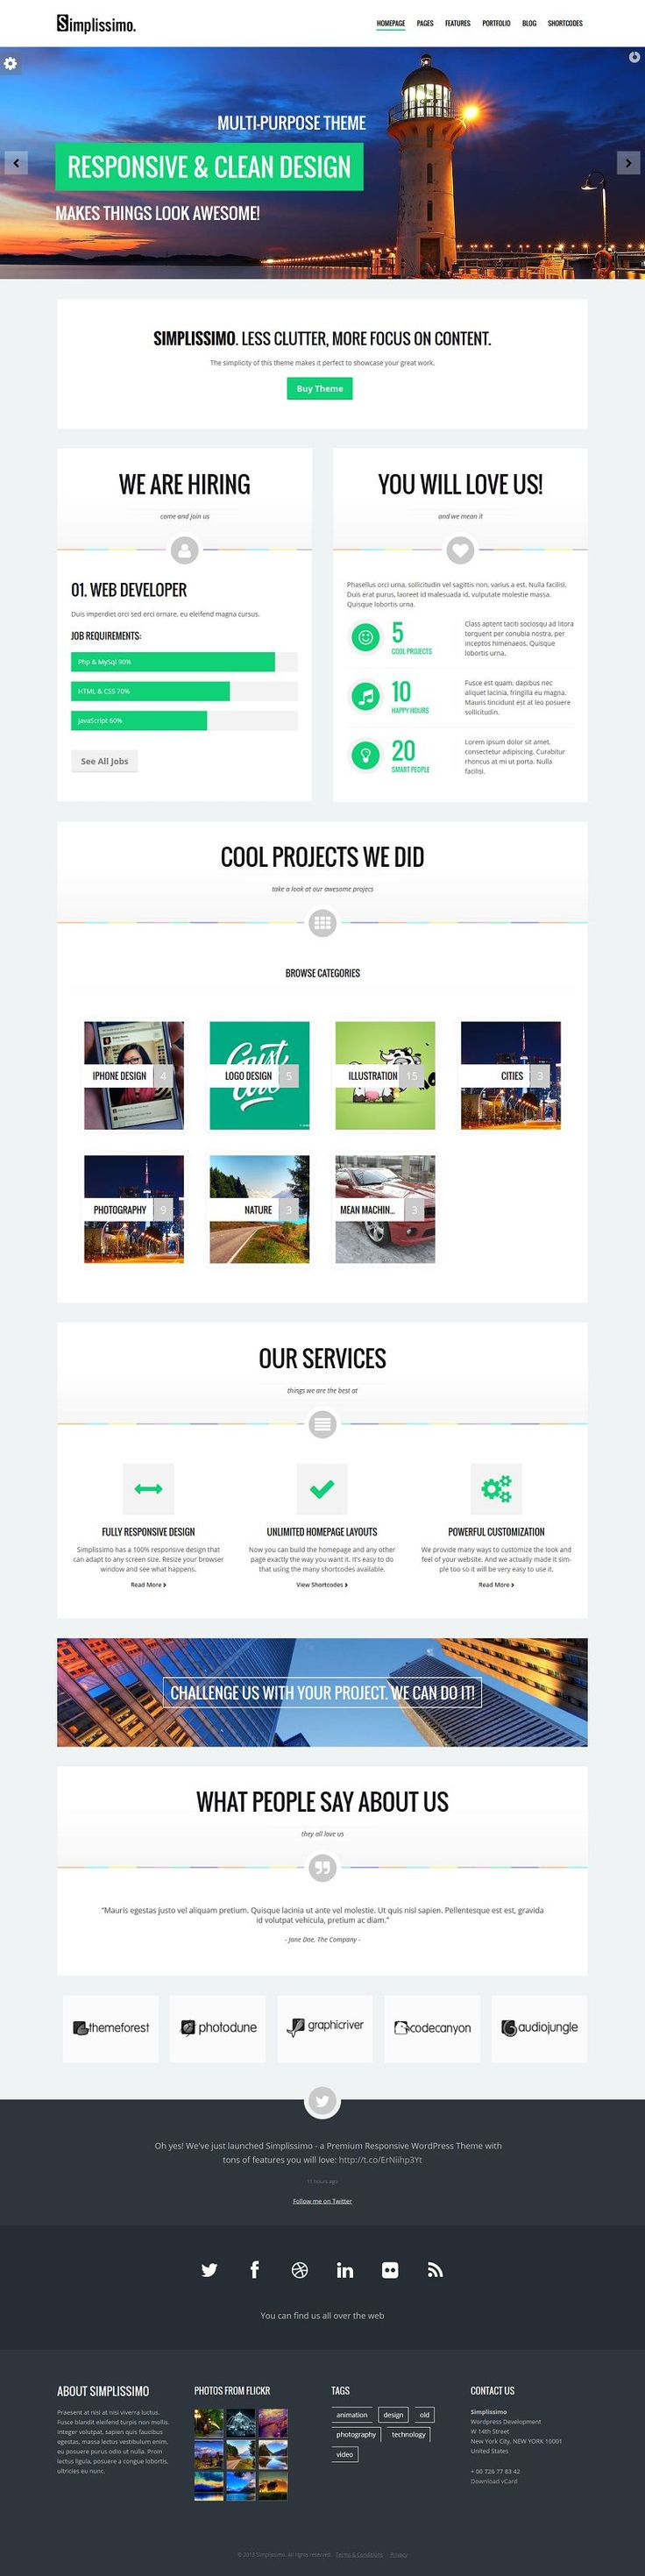 SIMPLISSIMO. Less clutter, more focus on content. Well, this is something we strongly believe in, and therefore the design of this theme fol...